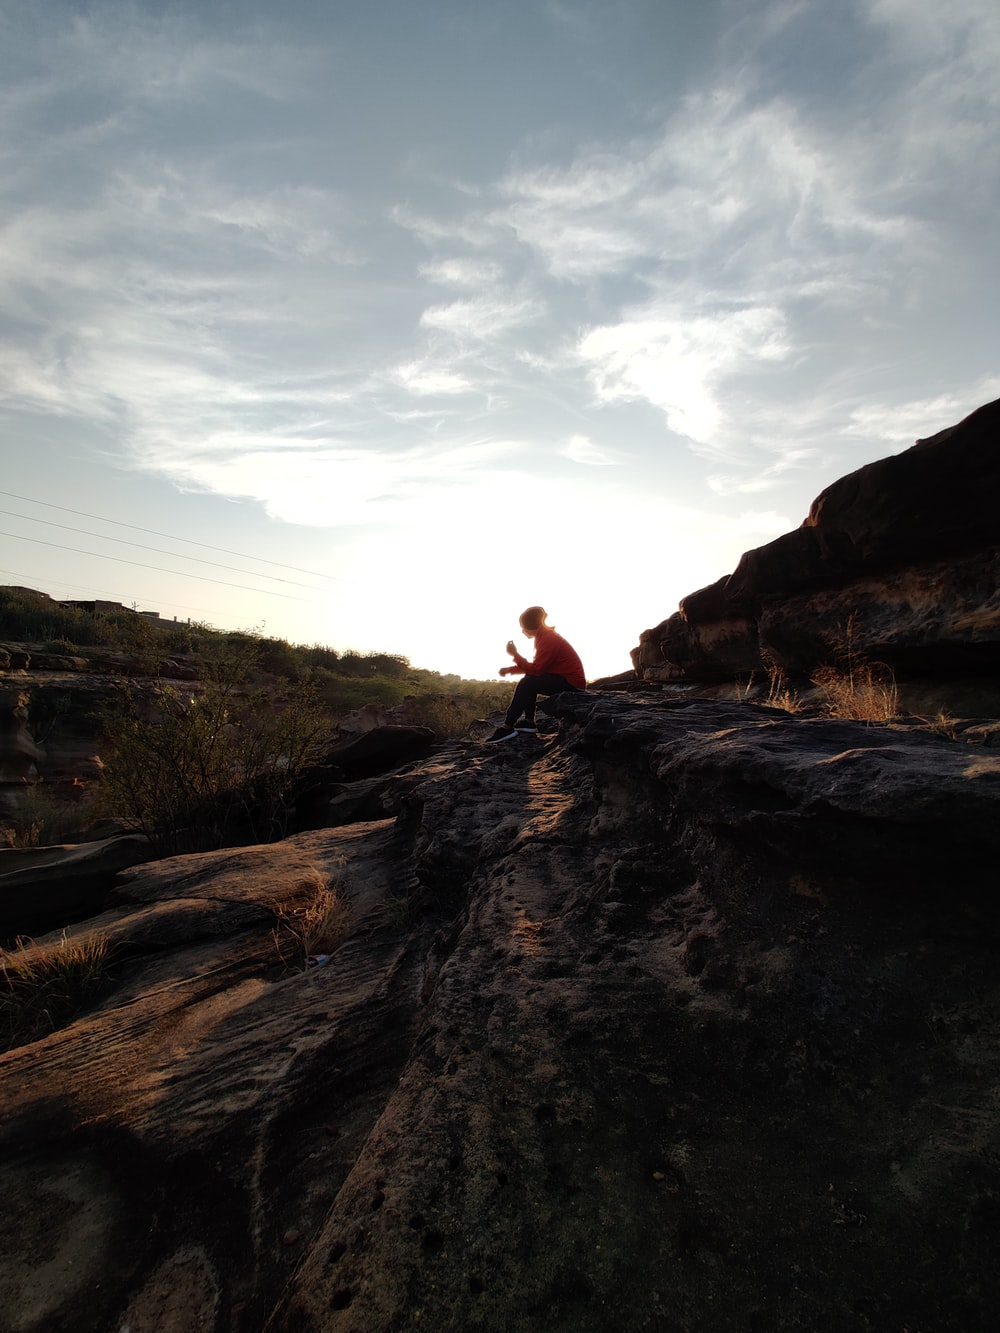 person sitting on brown rock formation during daytime